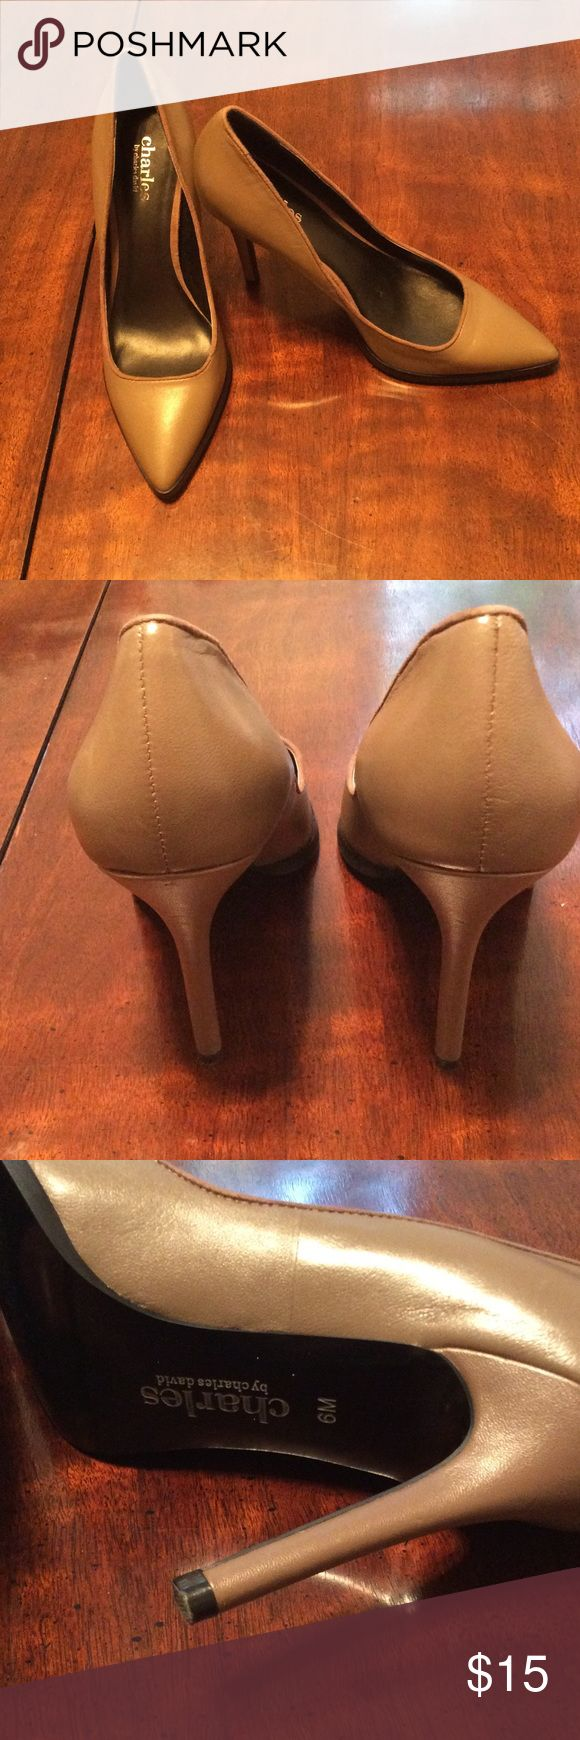 Charles by Charles David Shoes Great condition..love these Charles David Shoes Heels